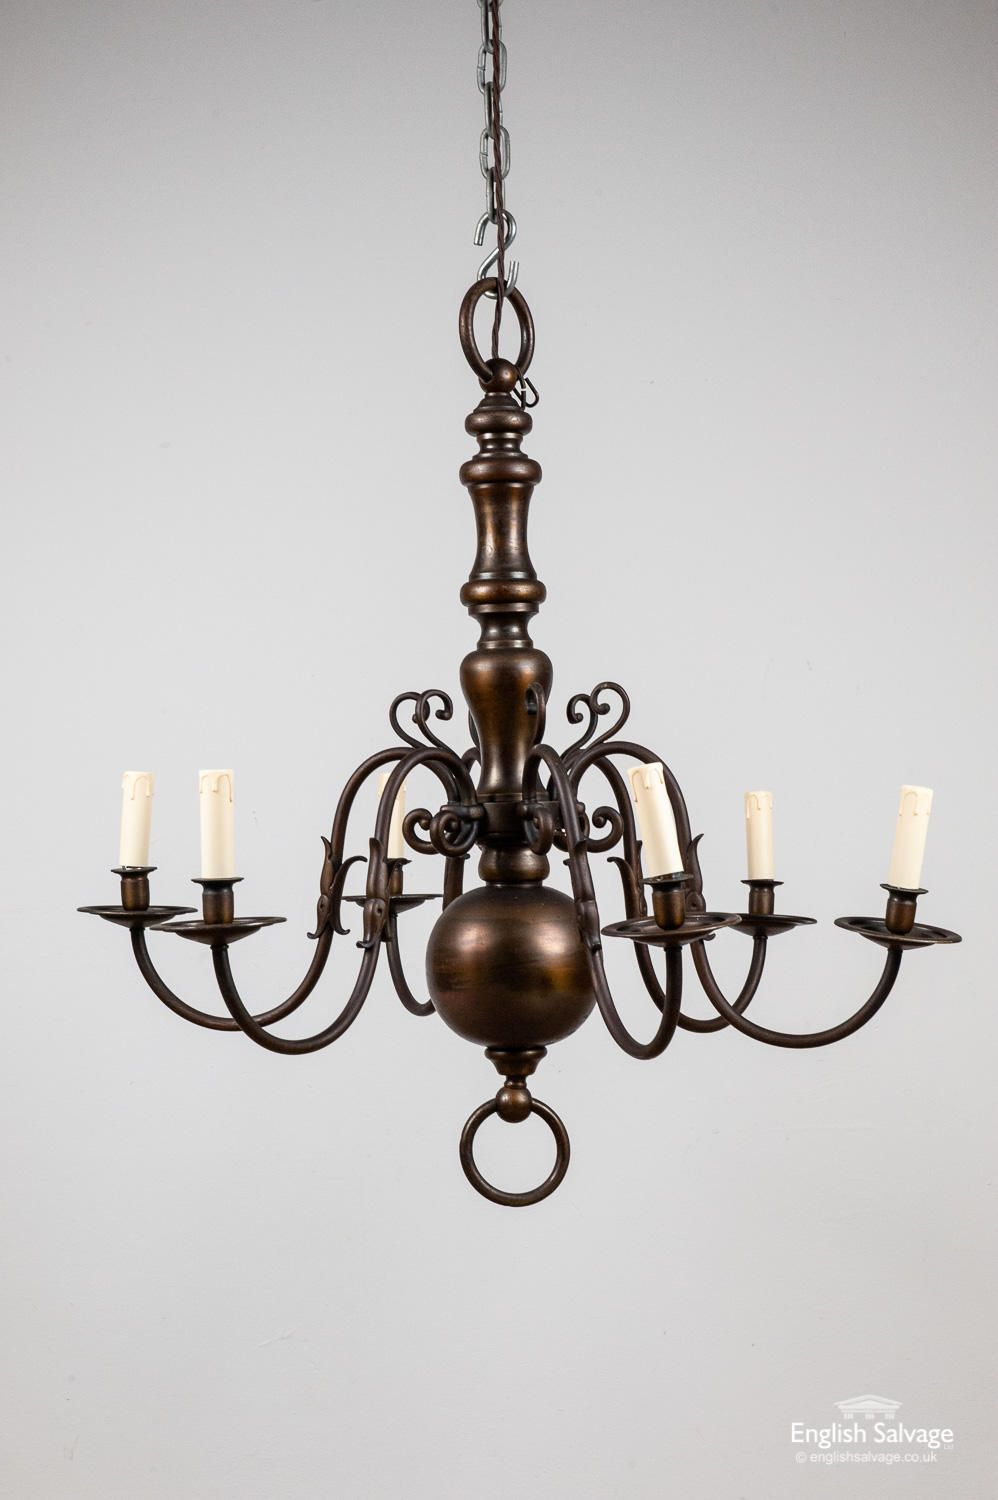 Flemish Style Six Arm Chandelier Light Lighting Rare And